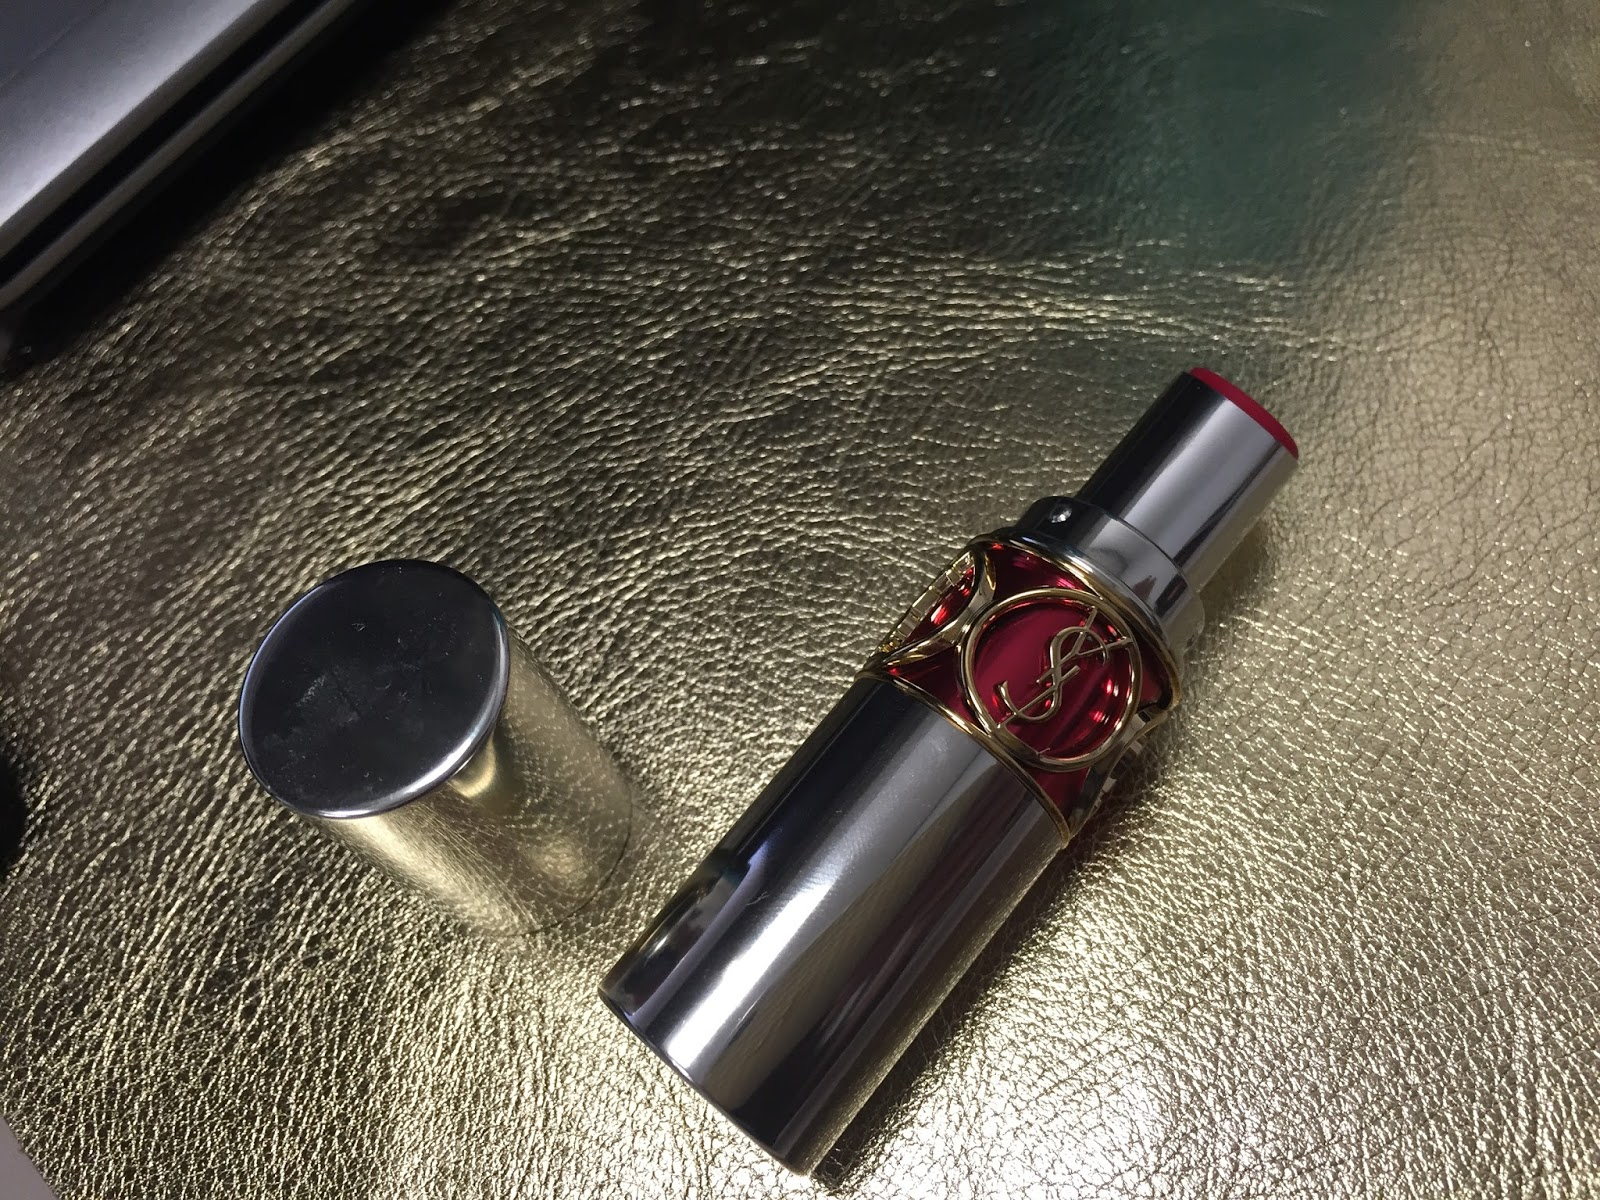 YSL Volupte Sheer Candy #04 Succulent Pomegranate